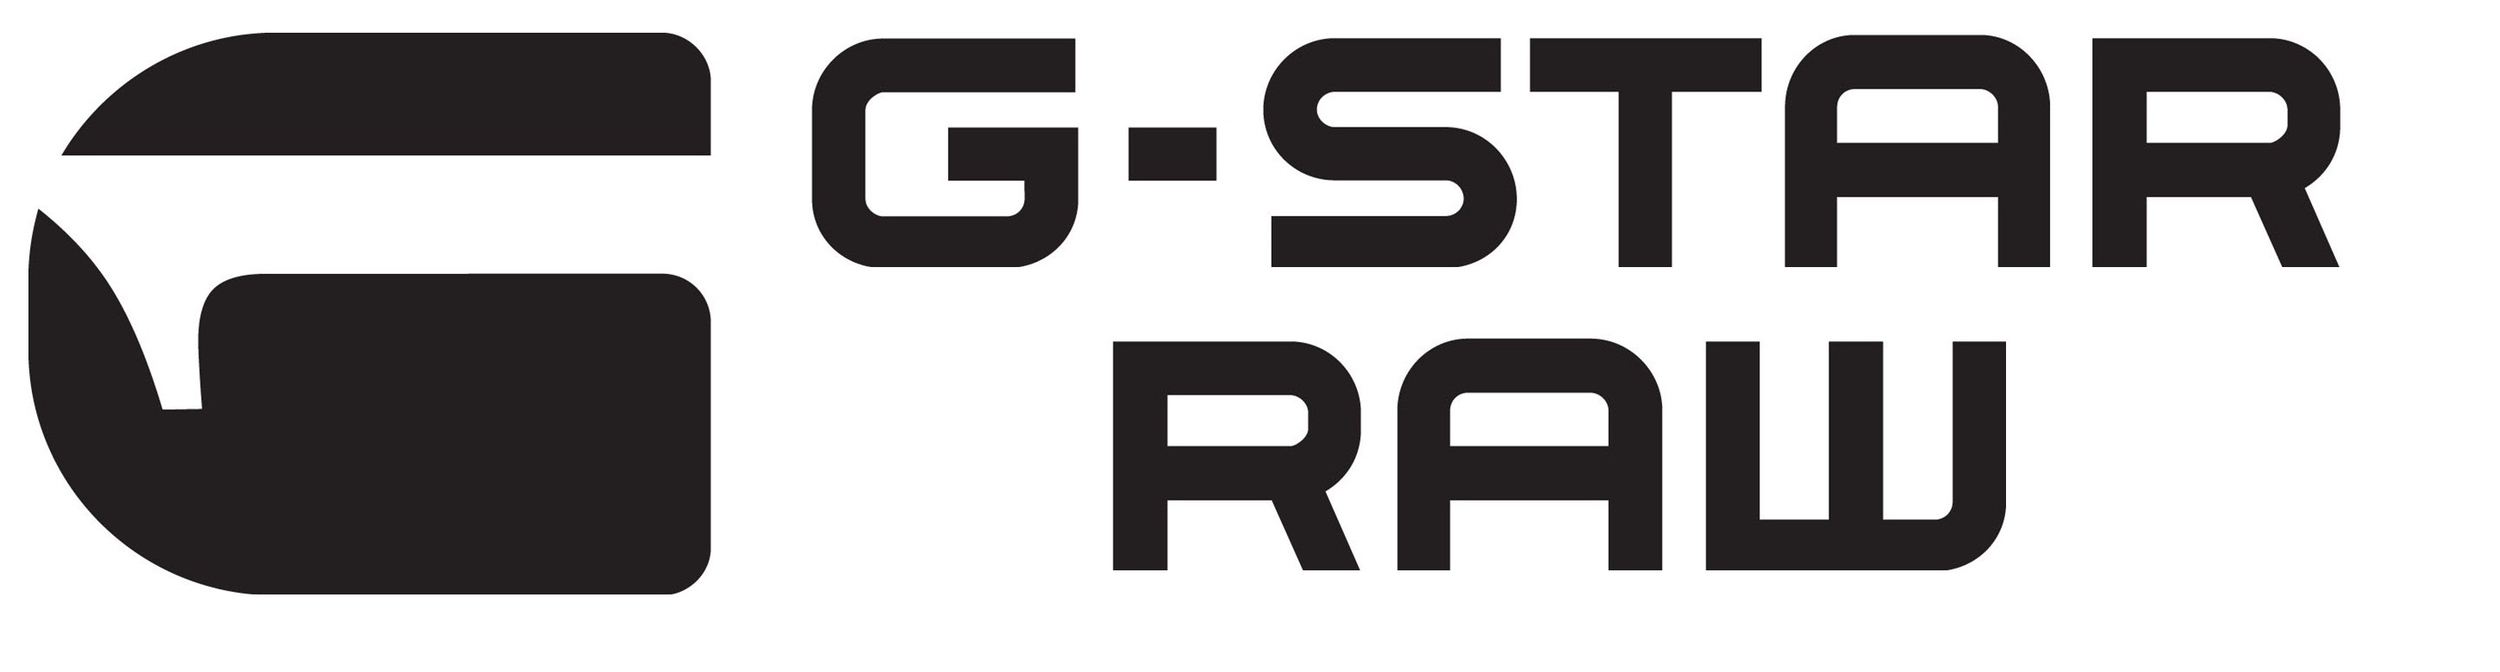 g-star2.png